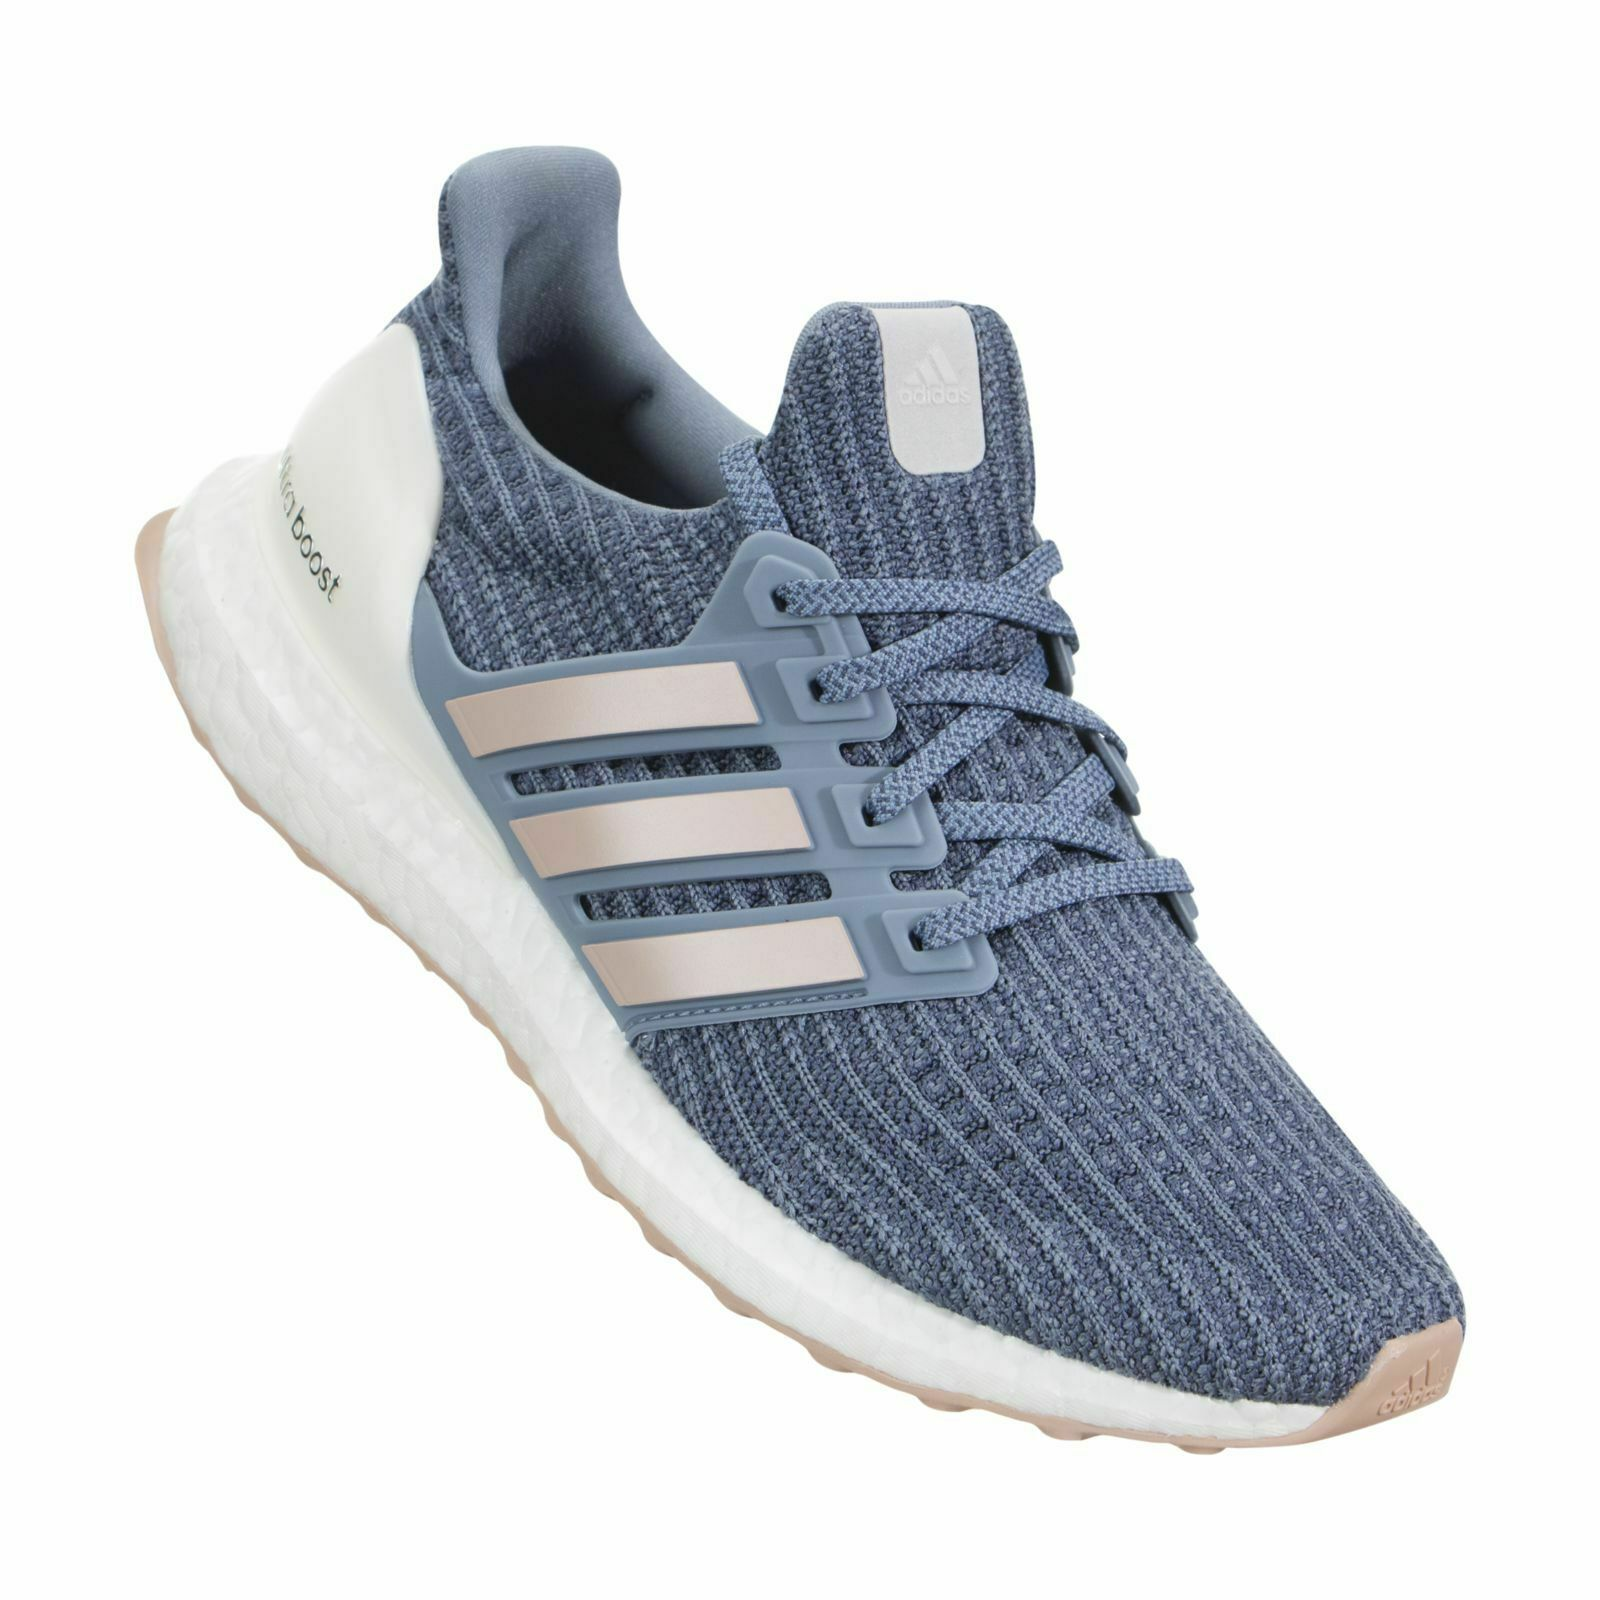 Adidas Ultra Boost w, Women's Sizes 7.5-10.5 B, RawGreyRunningWhite, BB6493 NEW!